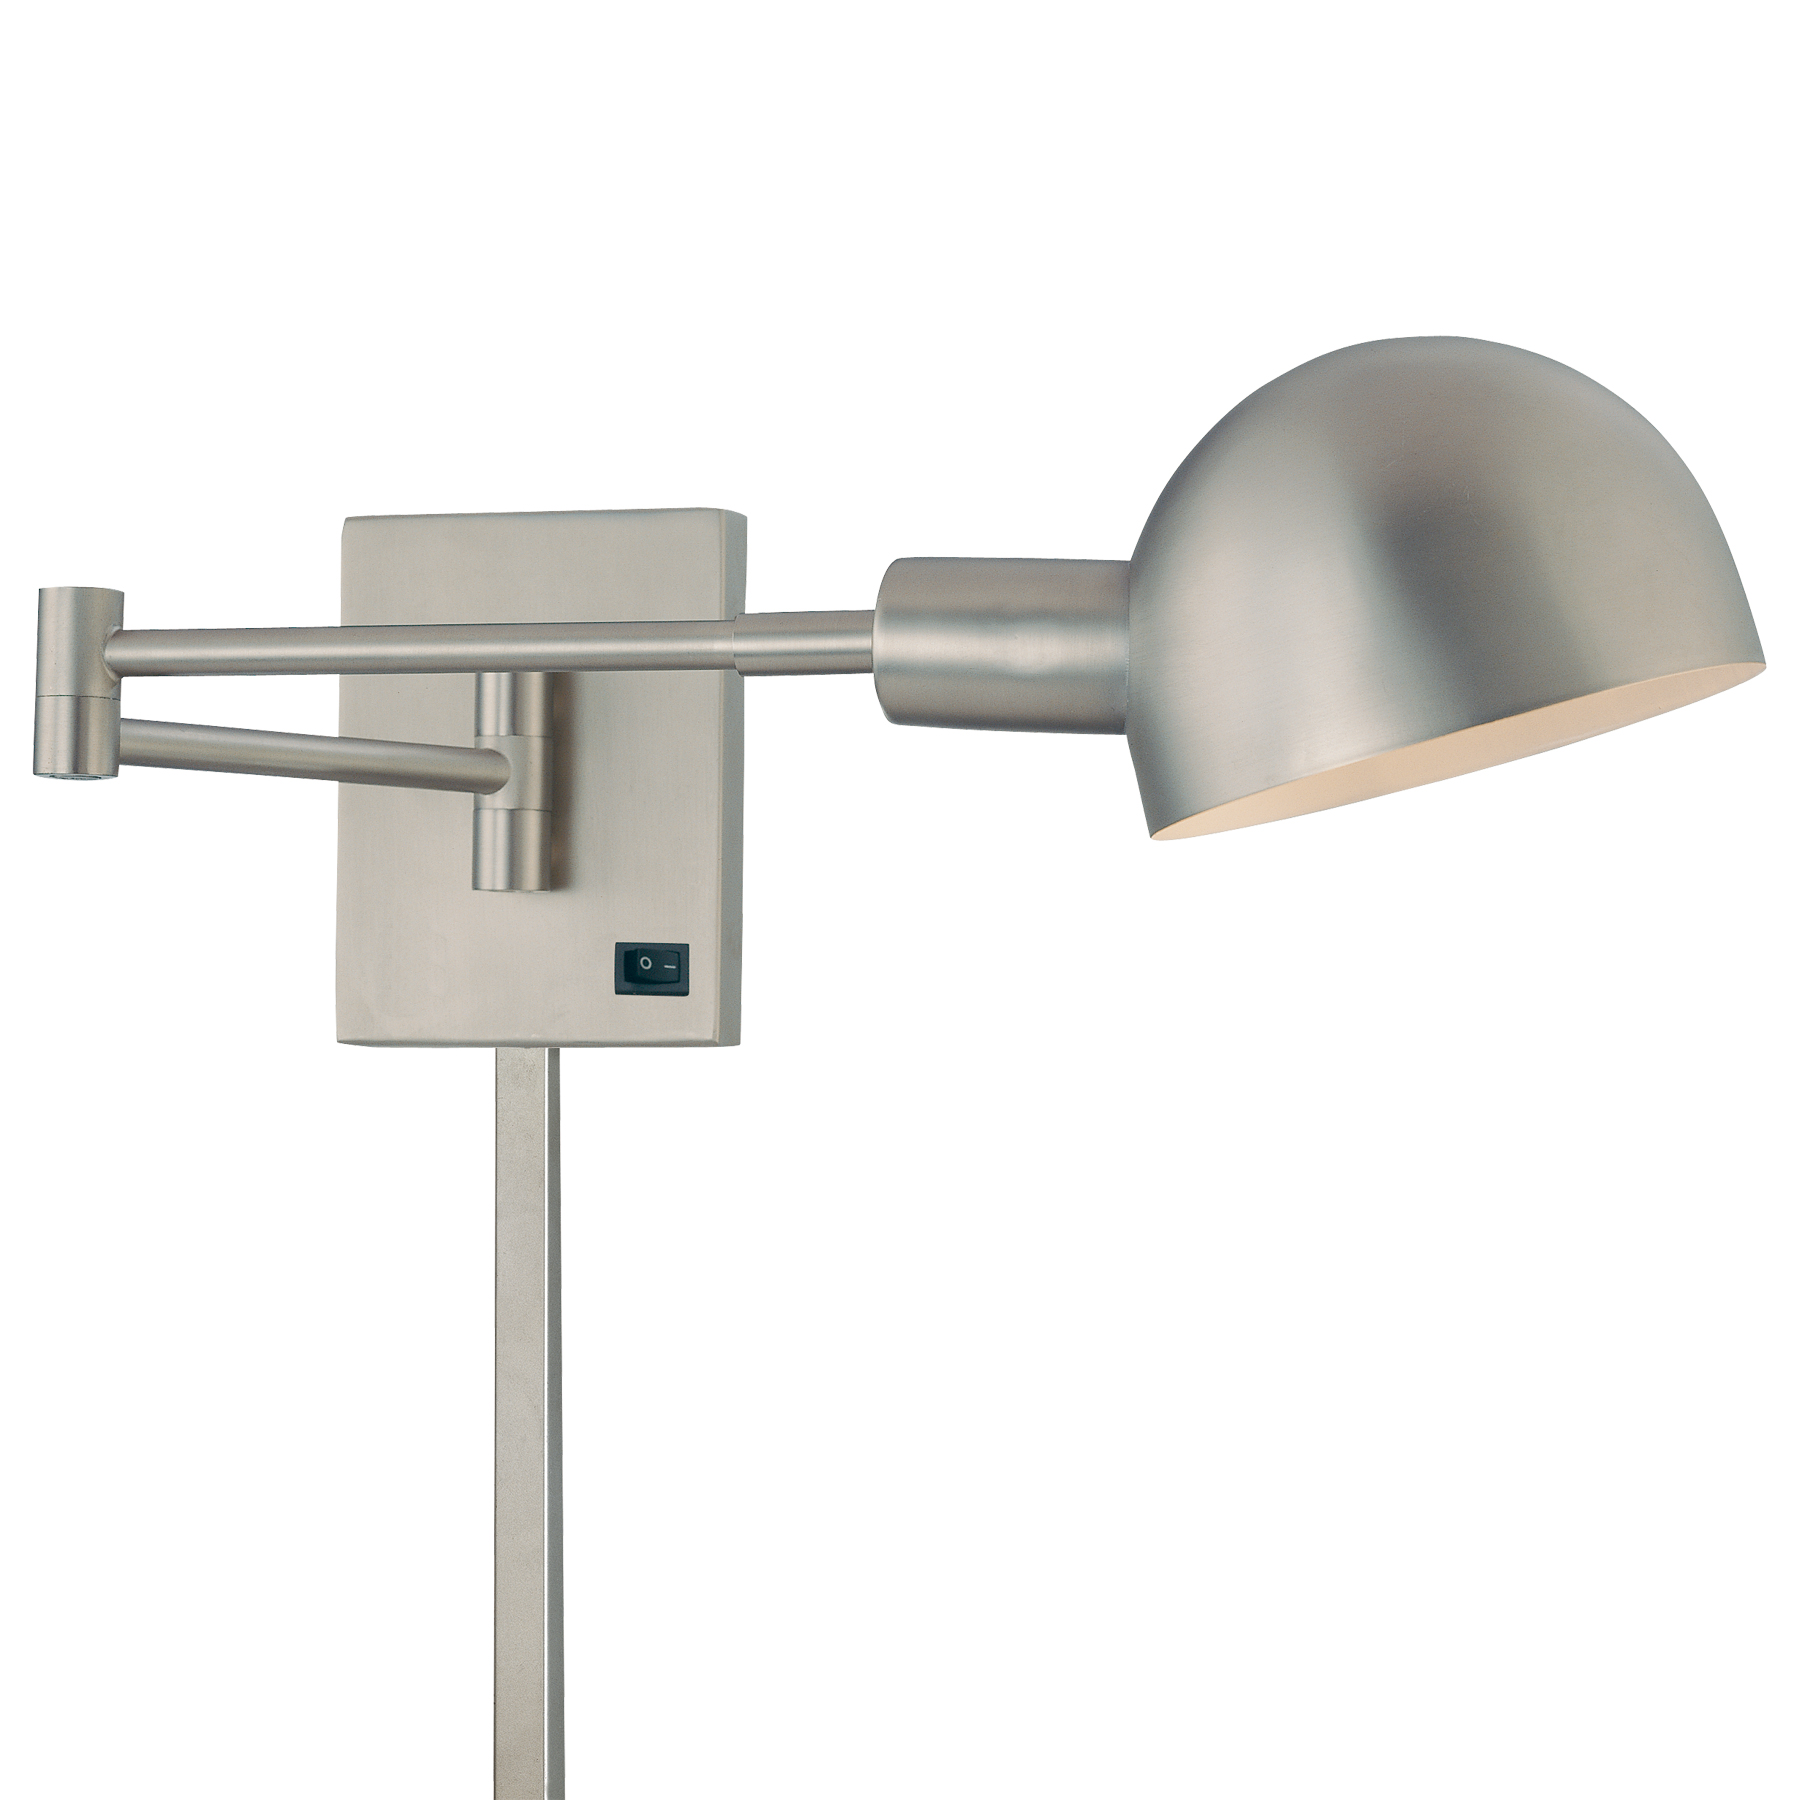 swing arm wall lamp plug in convincing reasons to upgrade - Bedroom Swing Arm Wall Sconces